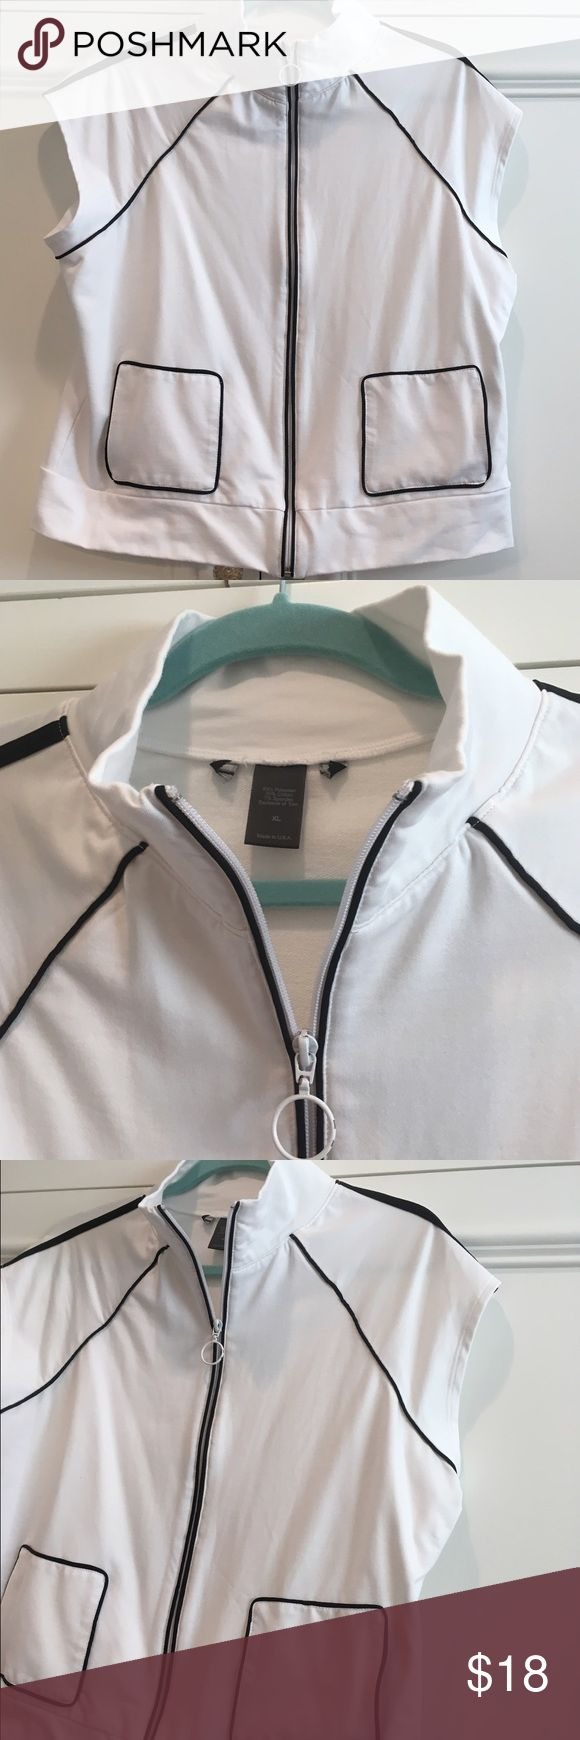 🎀 Sports VEST Tennis Golf- Zip Up 🎀 Great Sports VEST with Zip Up Front. In Clean White and thin black trim. Size XL. Not sure of Company, I cut out itchy label. In excellent condition. Jackets & Coats